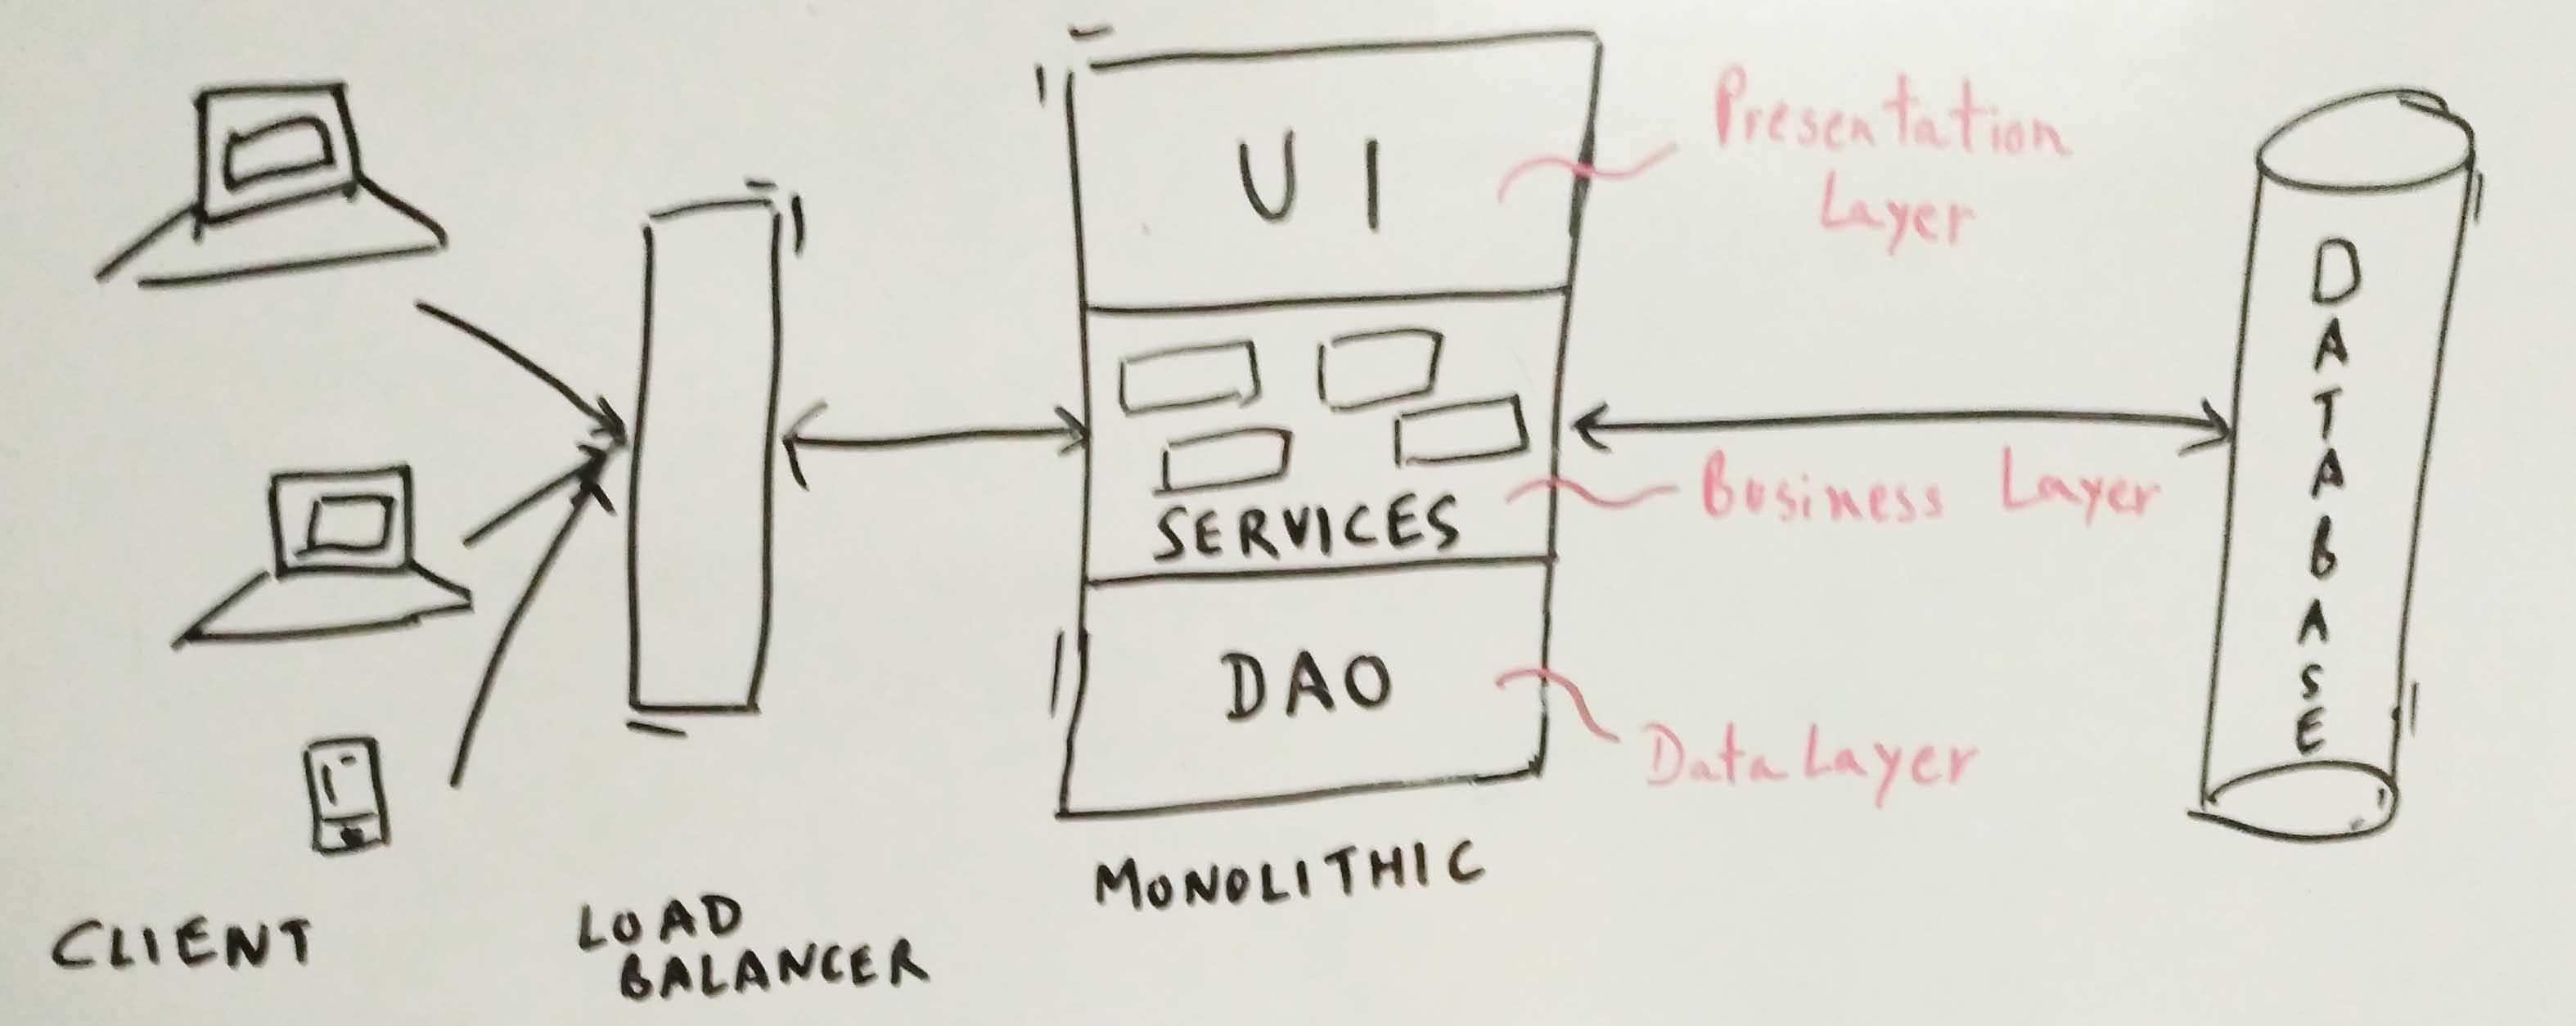 A Typical Monolithic Application